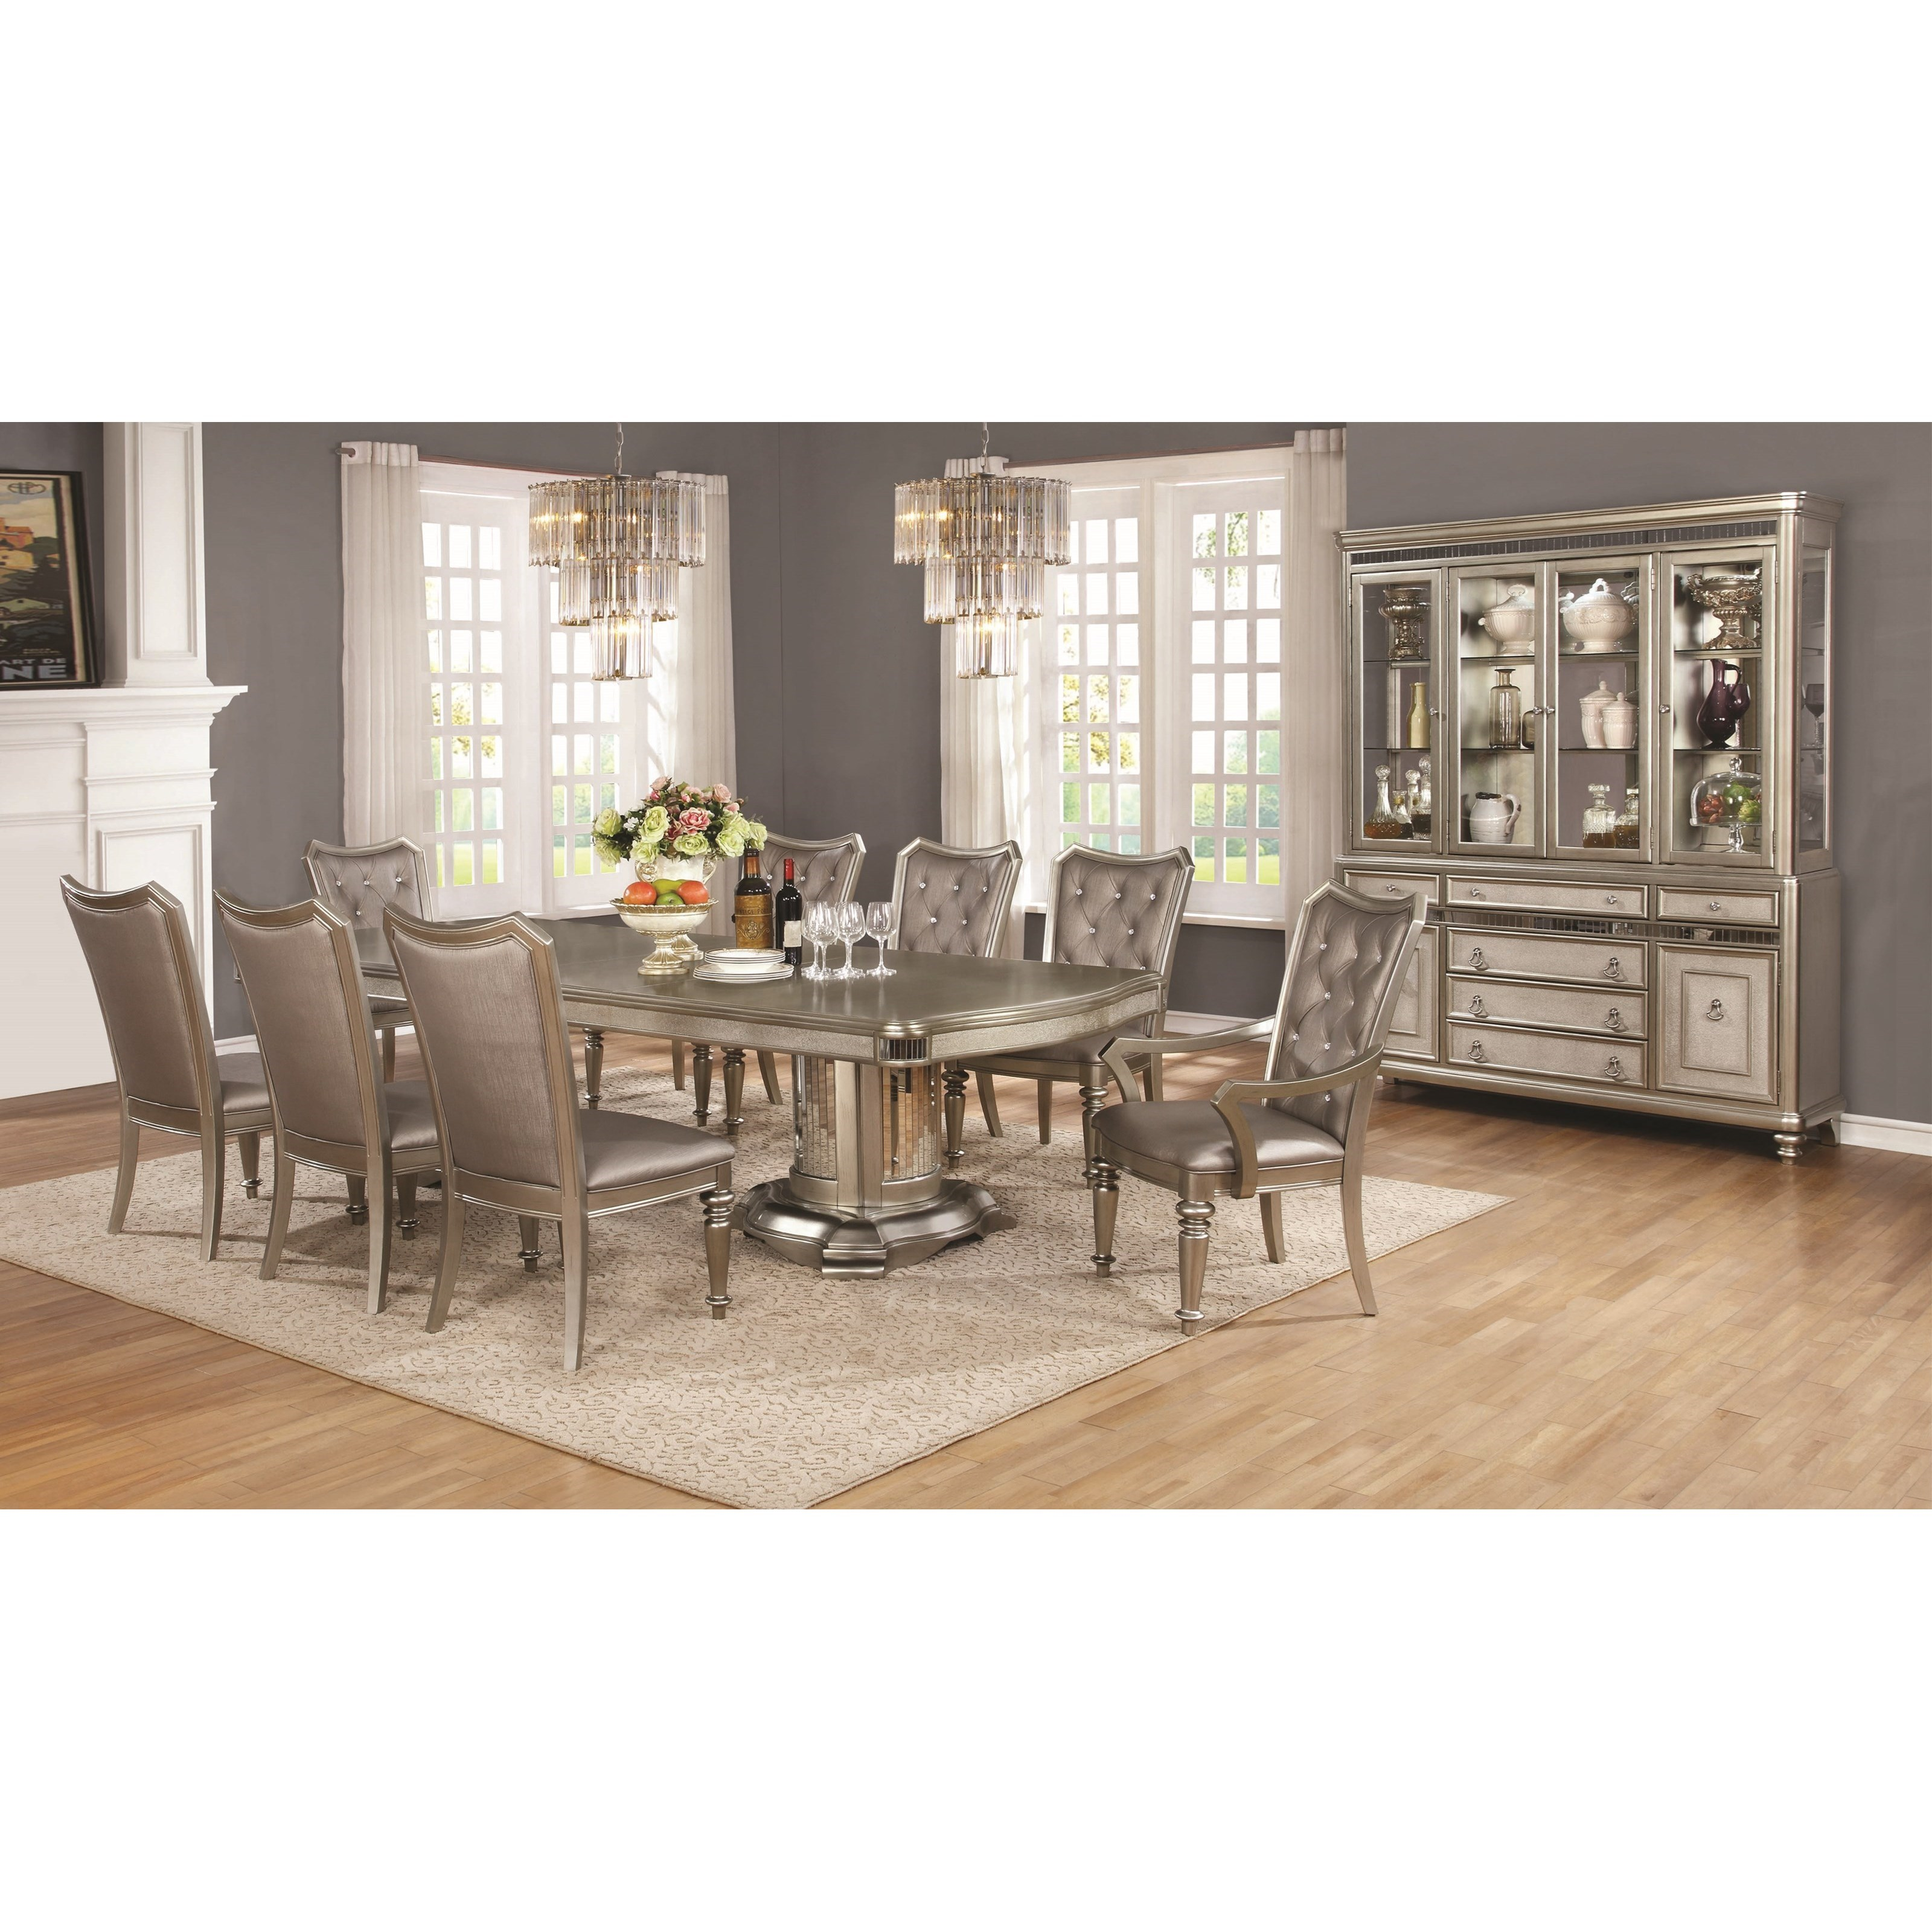 Danette Formal Dining Room Group by Coaster at Lapeer Furniture & Mattress Center